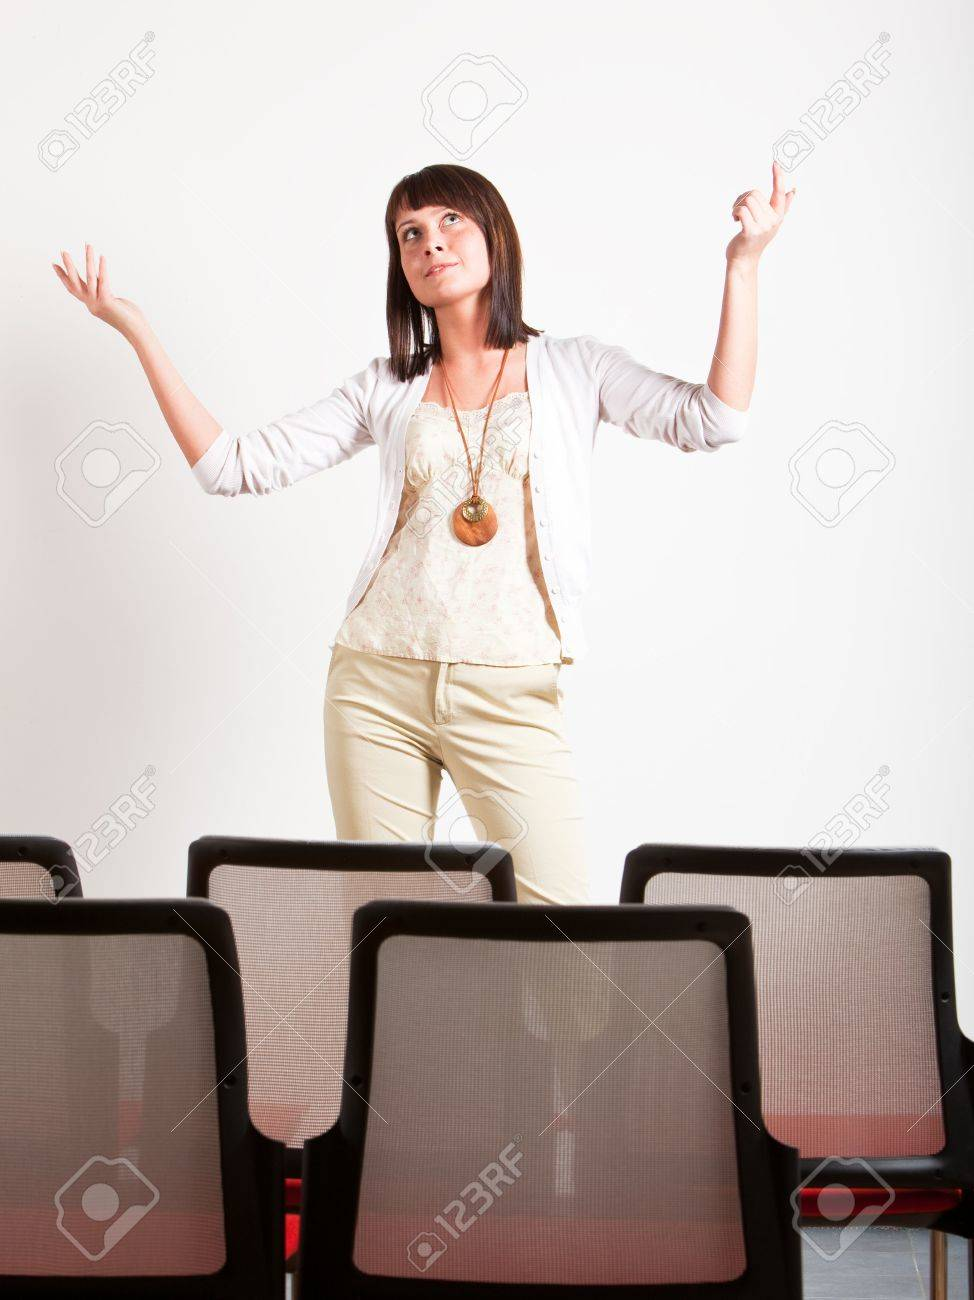 woman making a presentation in class, explaining with hands up Stock Photo - 6489994